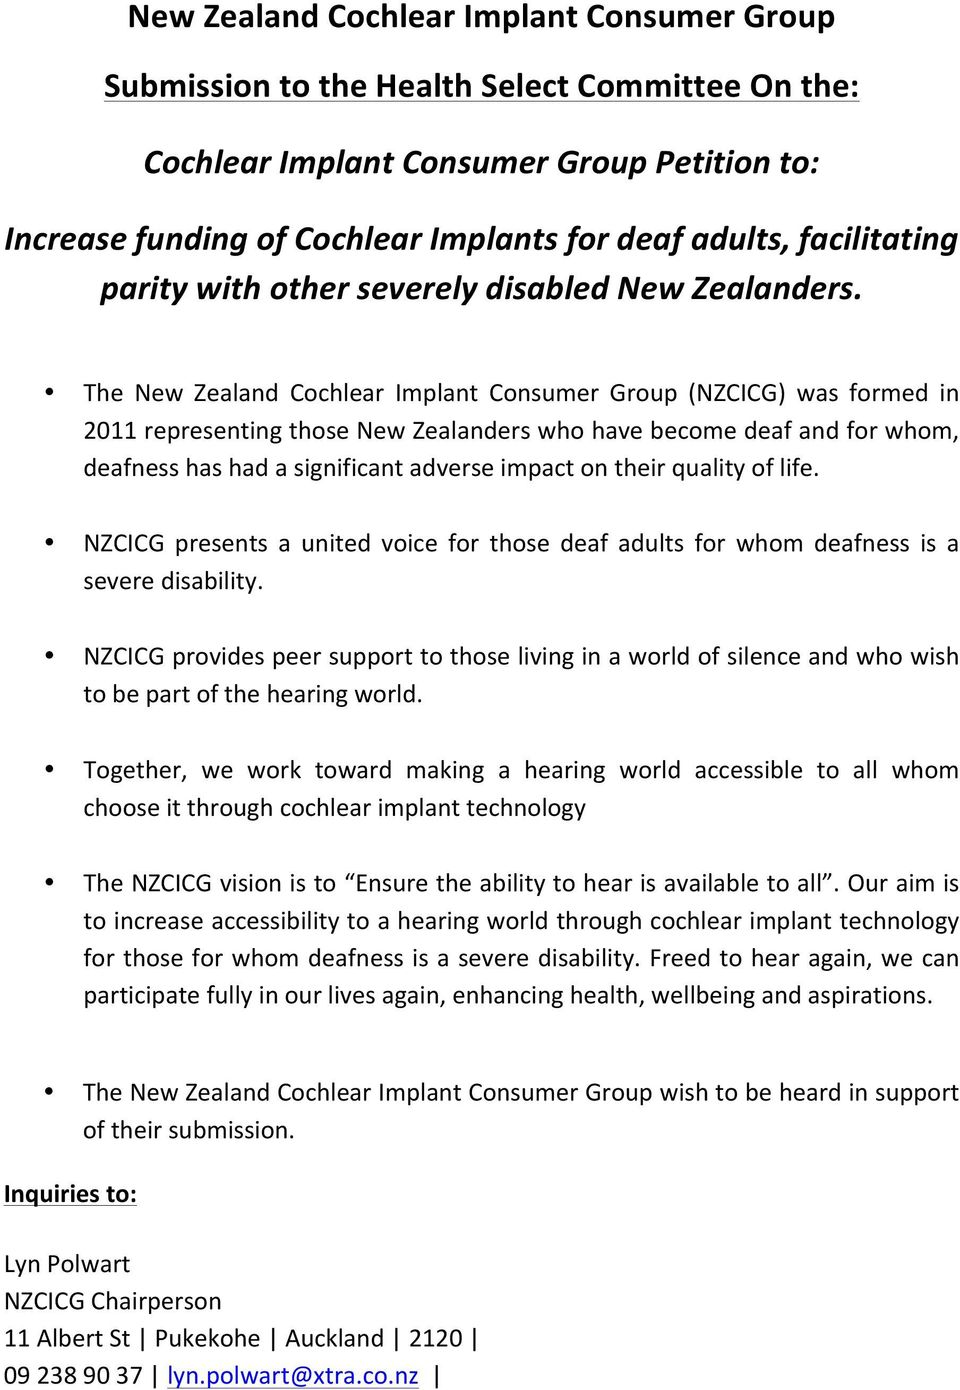 The New Zealand Cochlear Implant Consumer Group (NZCICG) was formed in 2011 representing those New Zealanders who have become deaf and for whom, deafness has had a significant adverse impact on their